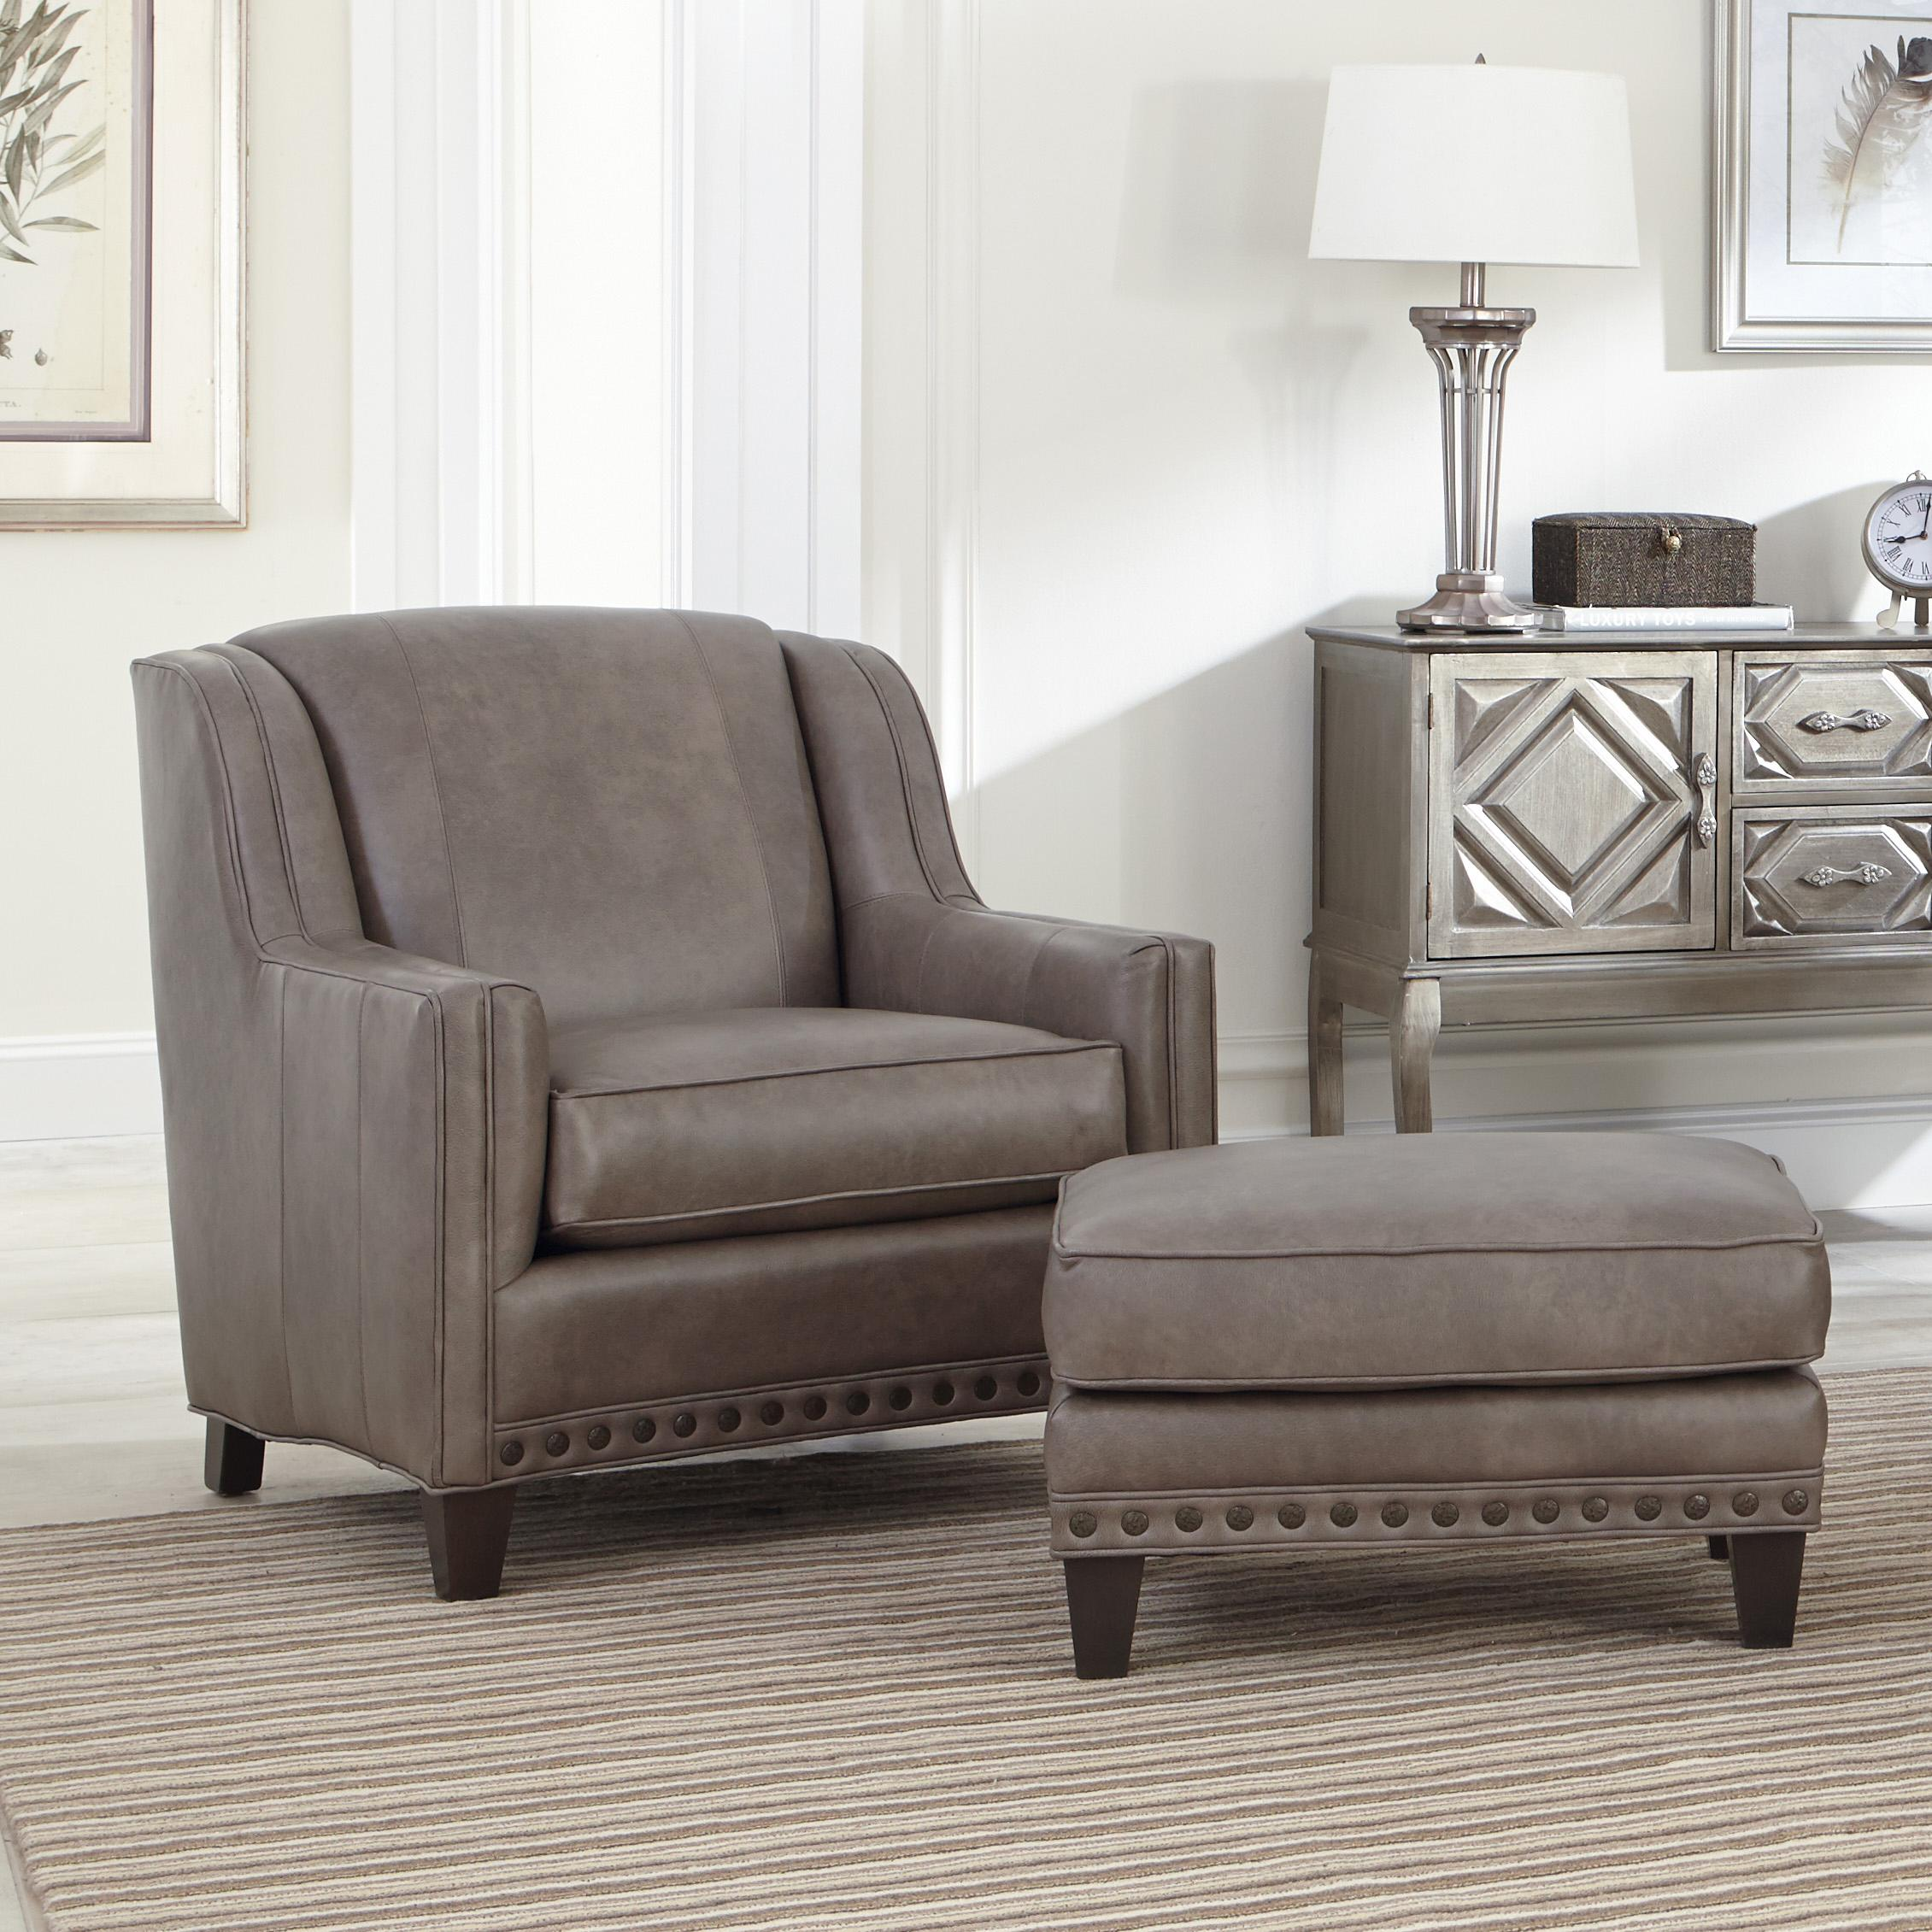 227 Upholstered Chair and Ottoman Combination by Smith Brothers at Saugerties Furniture Mart